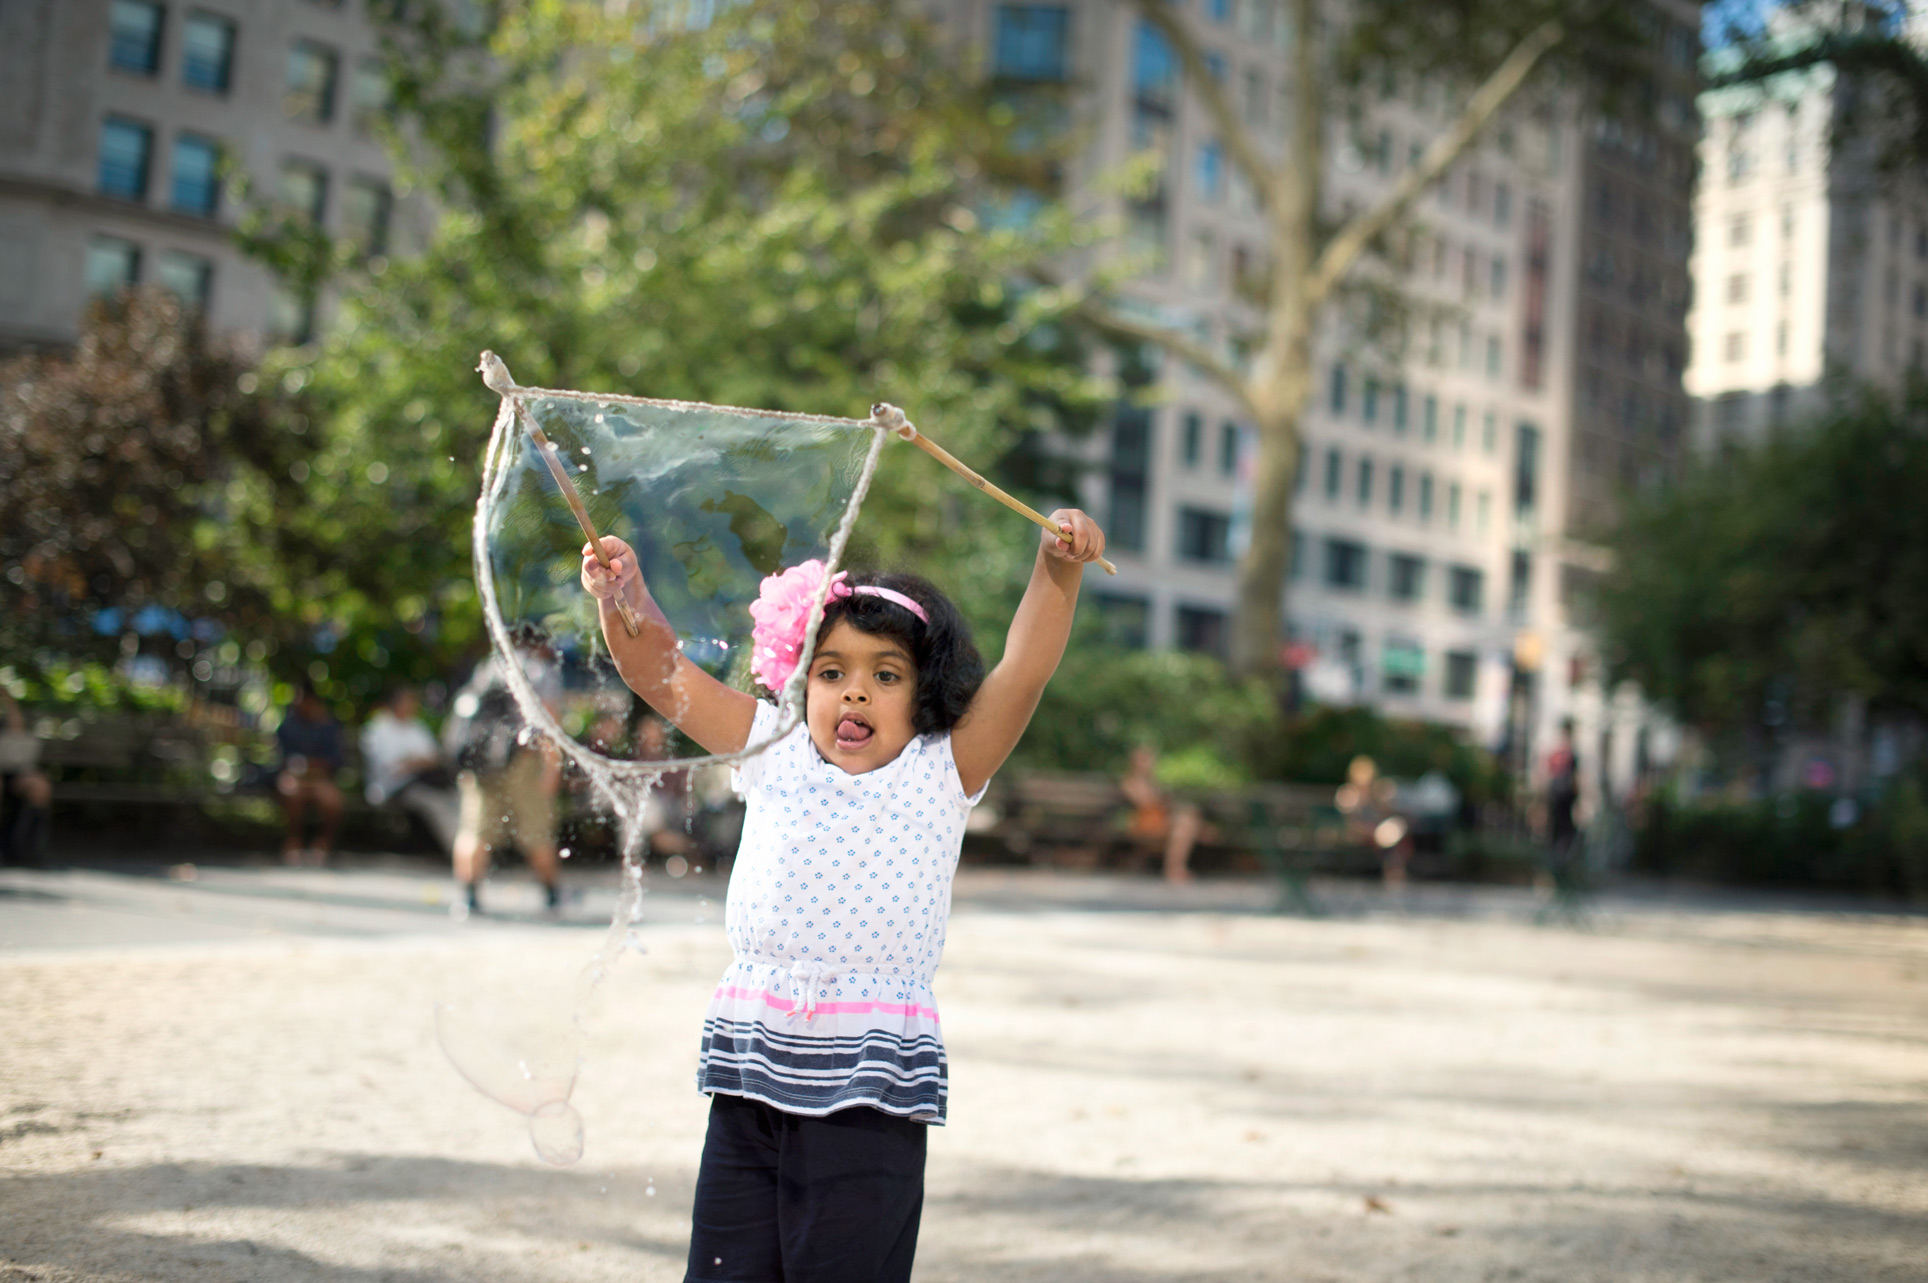 Girl in NYC park playing with giant bubble